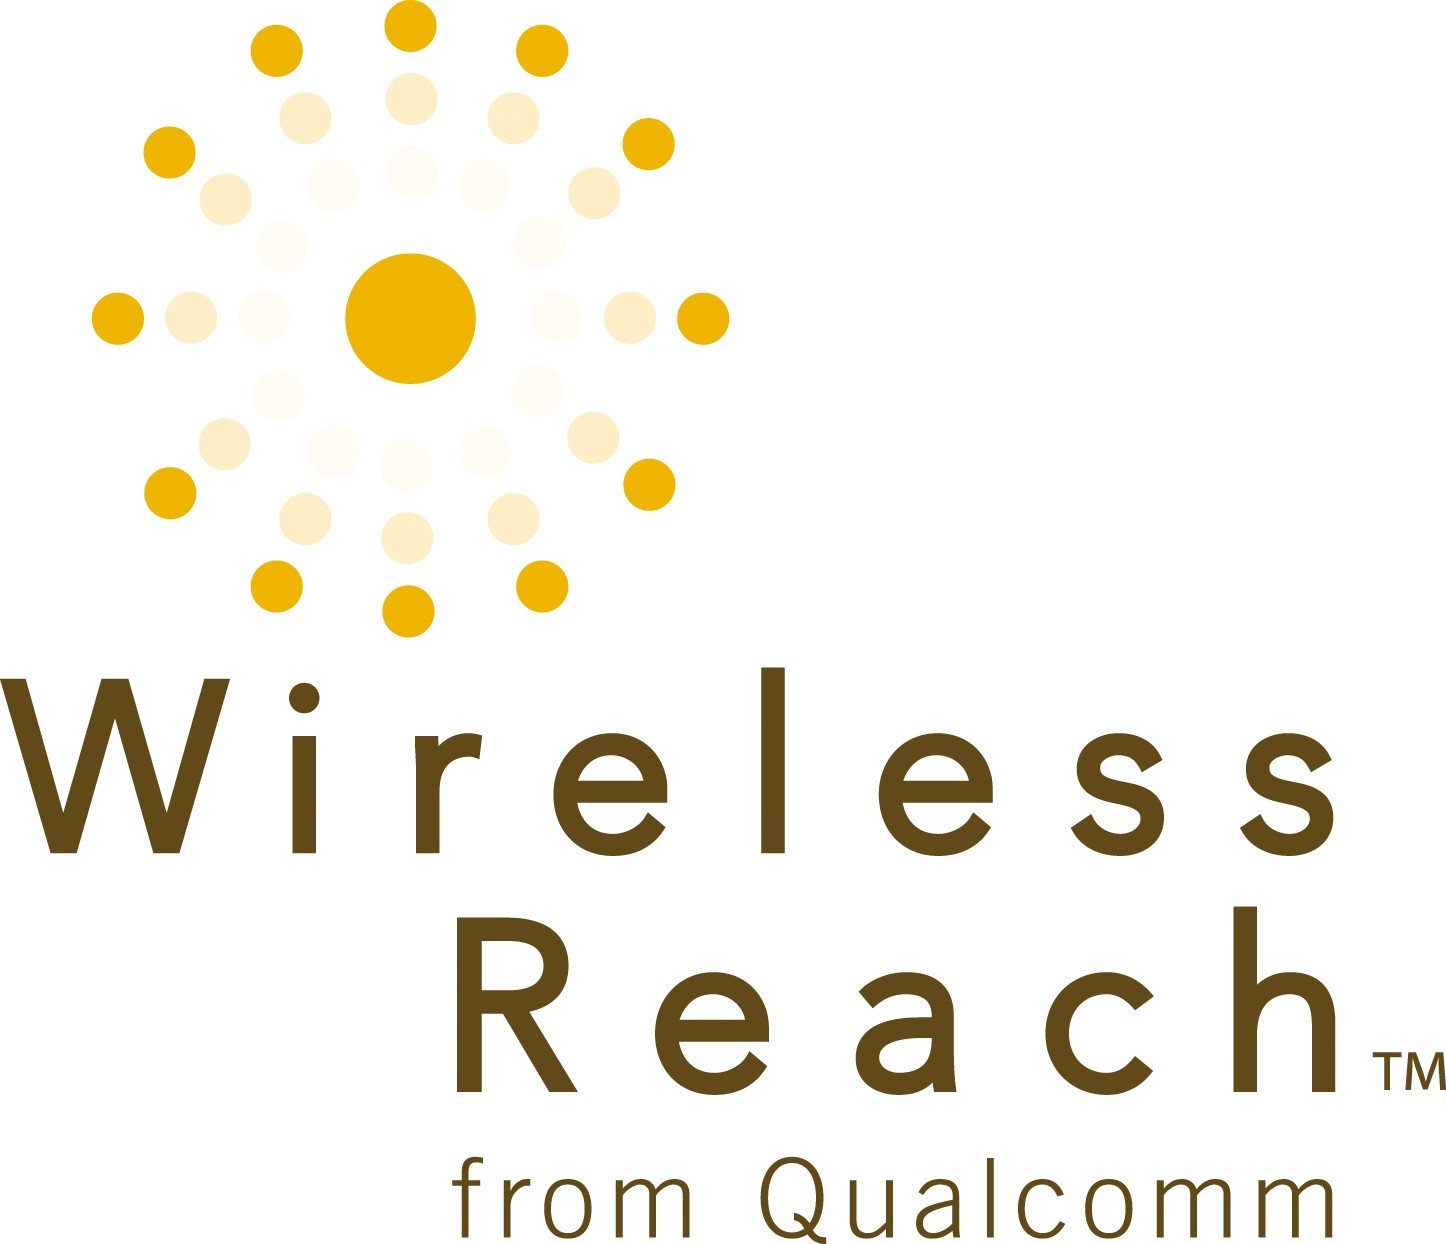 WirelessReach